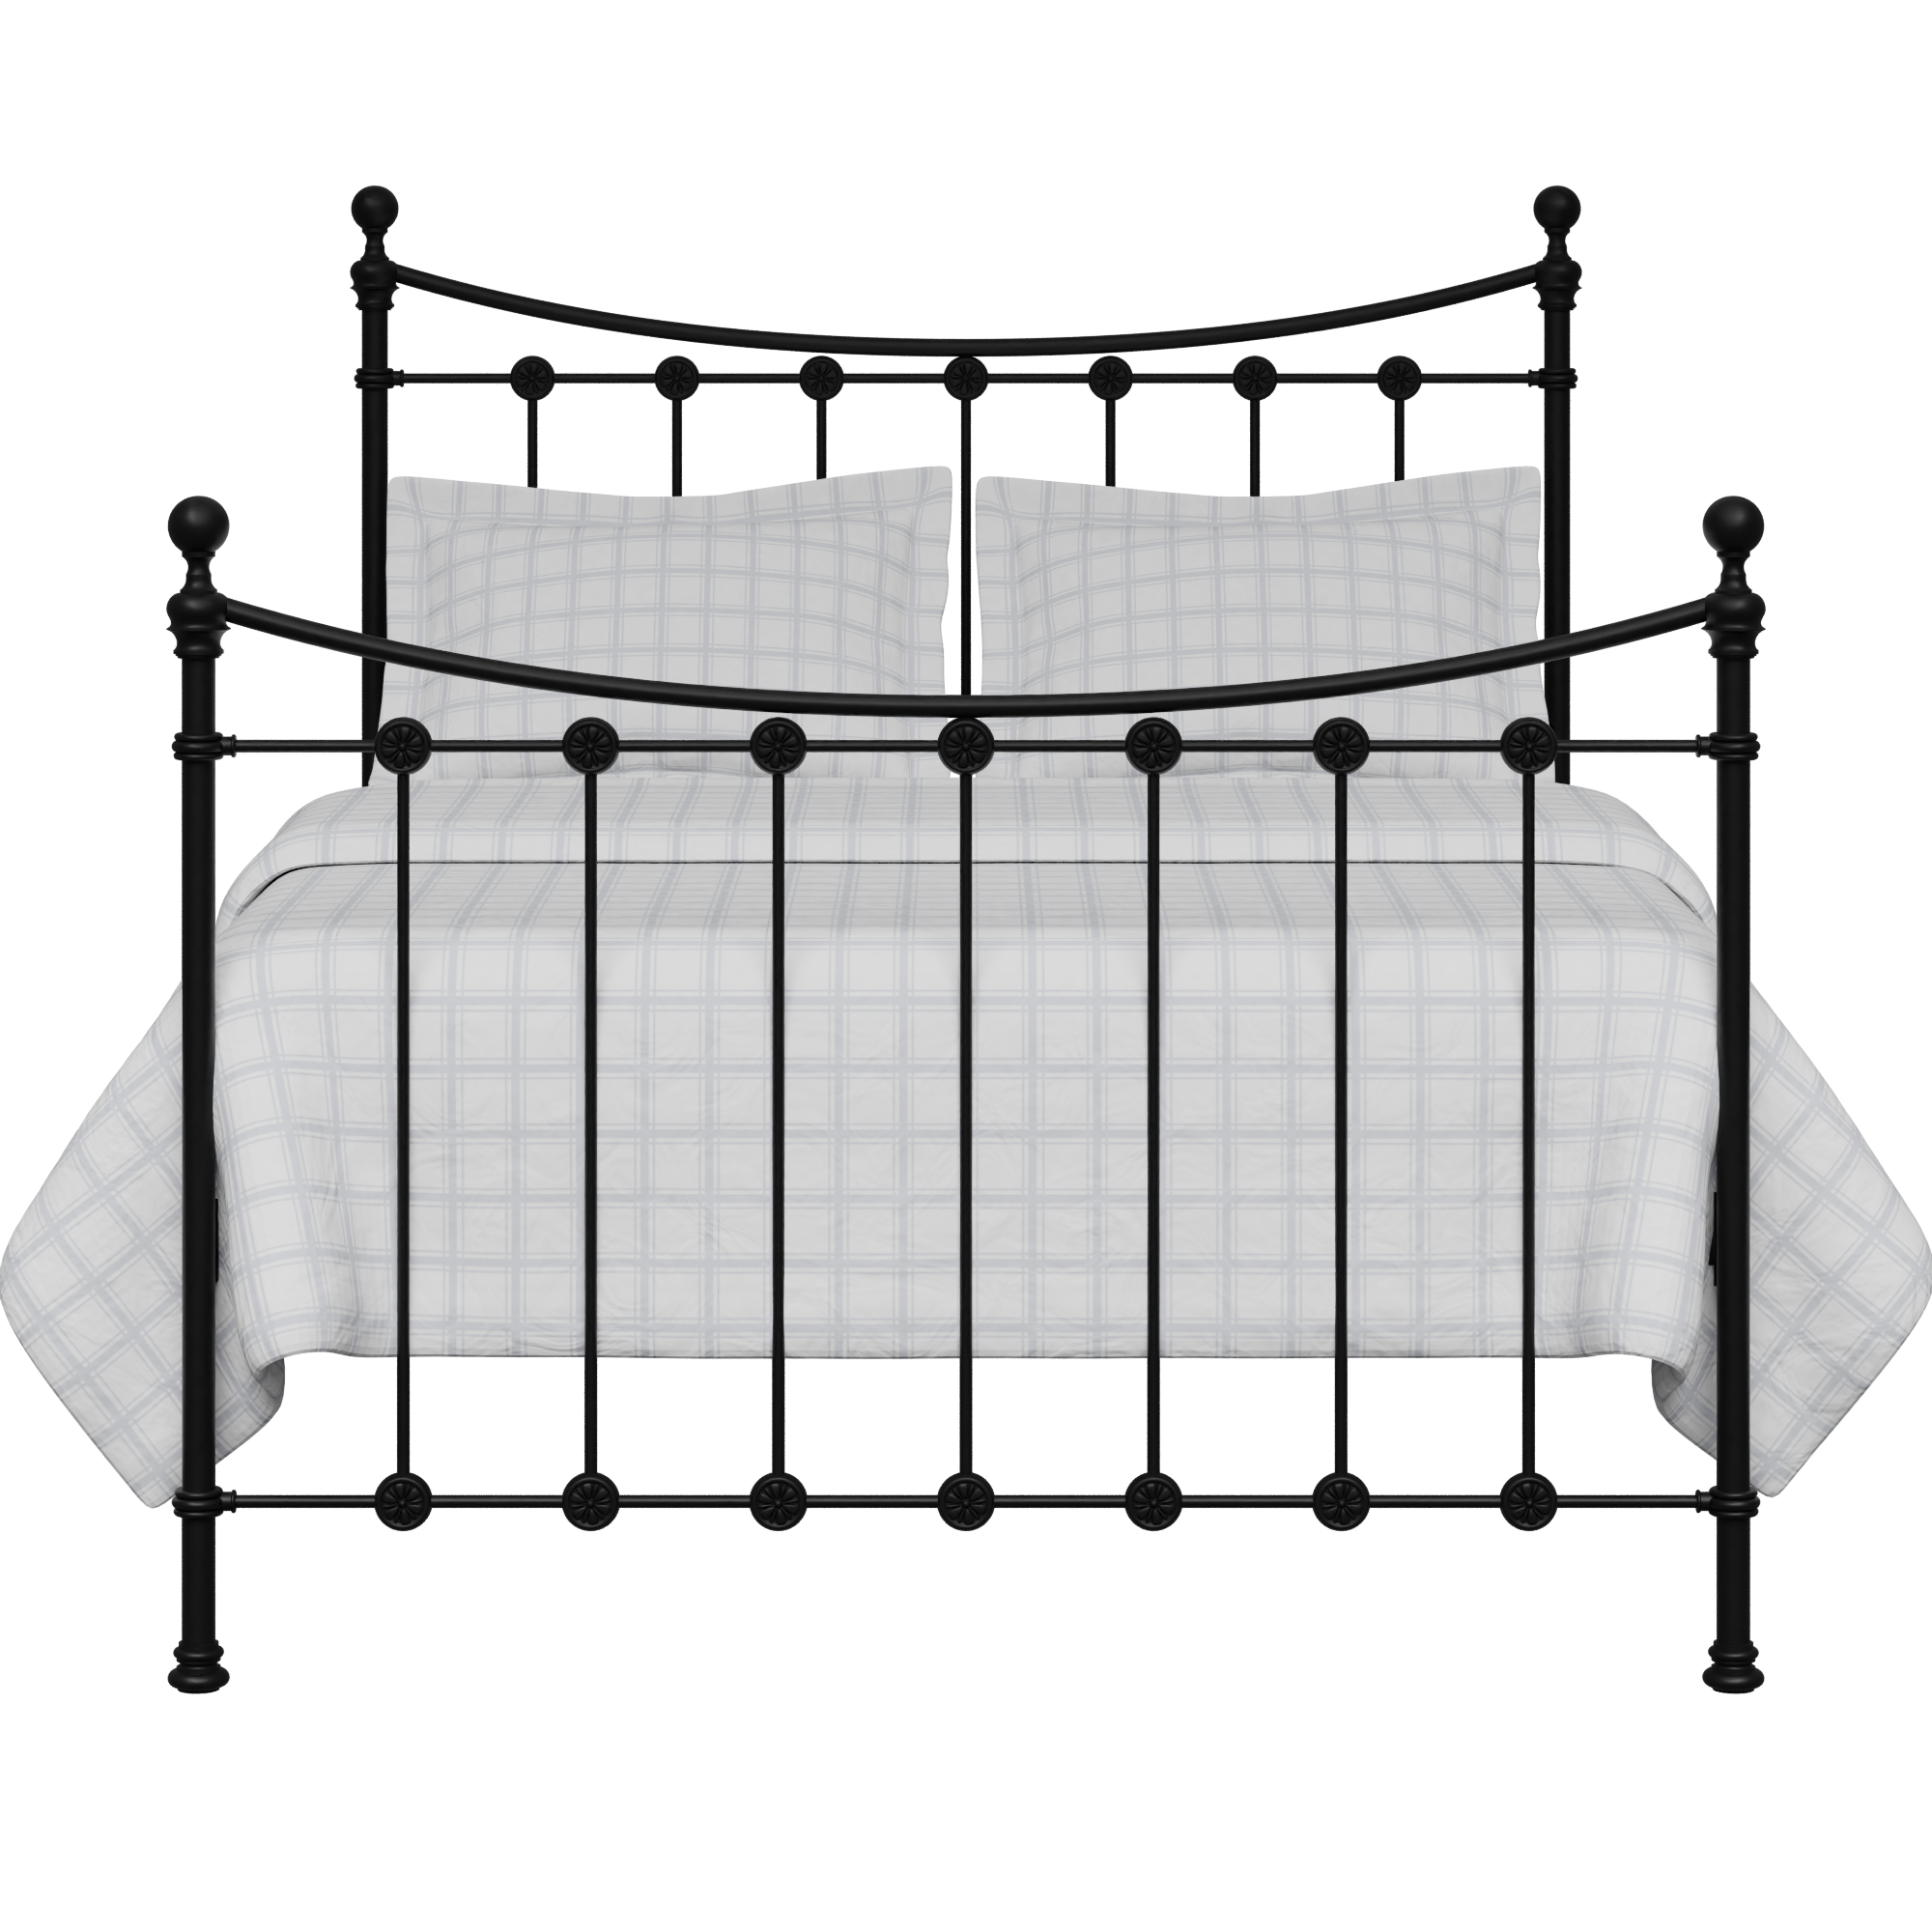 Carrick Solo iron/metal bed in black